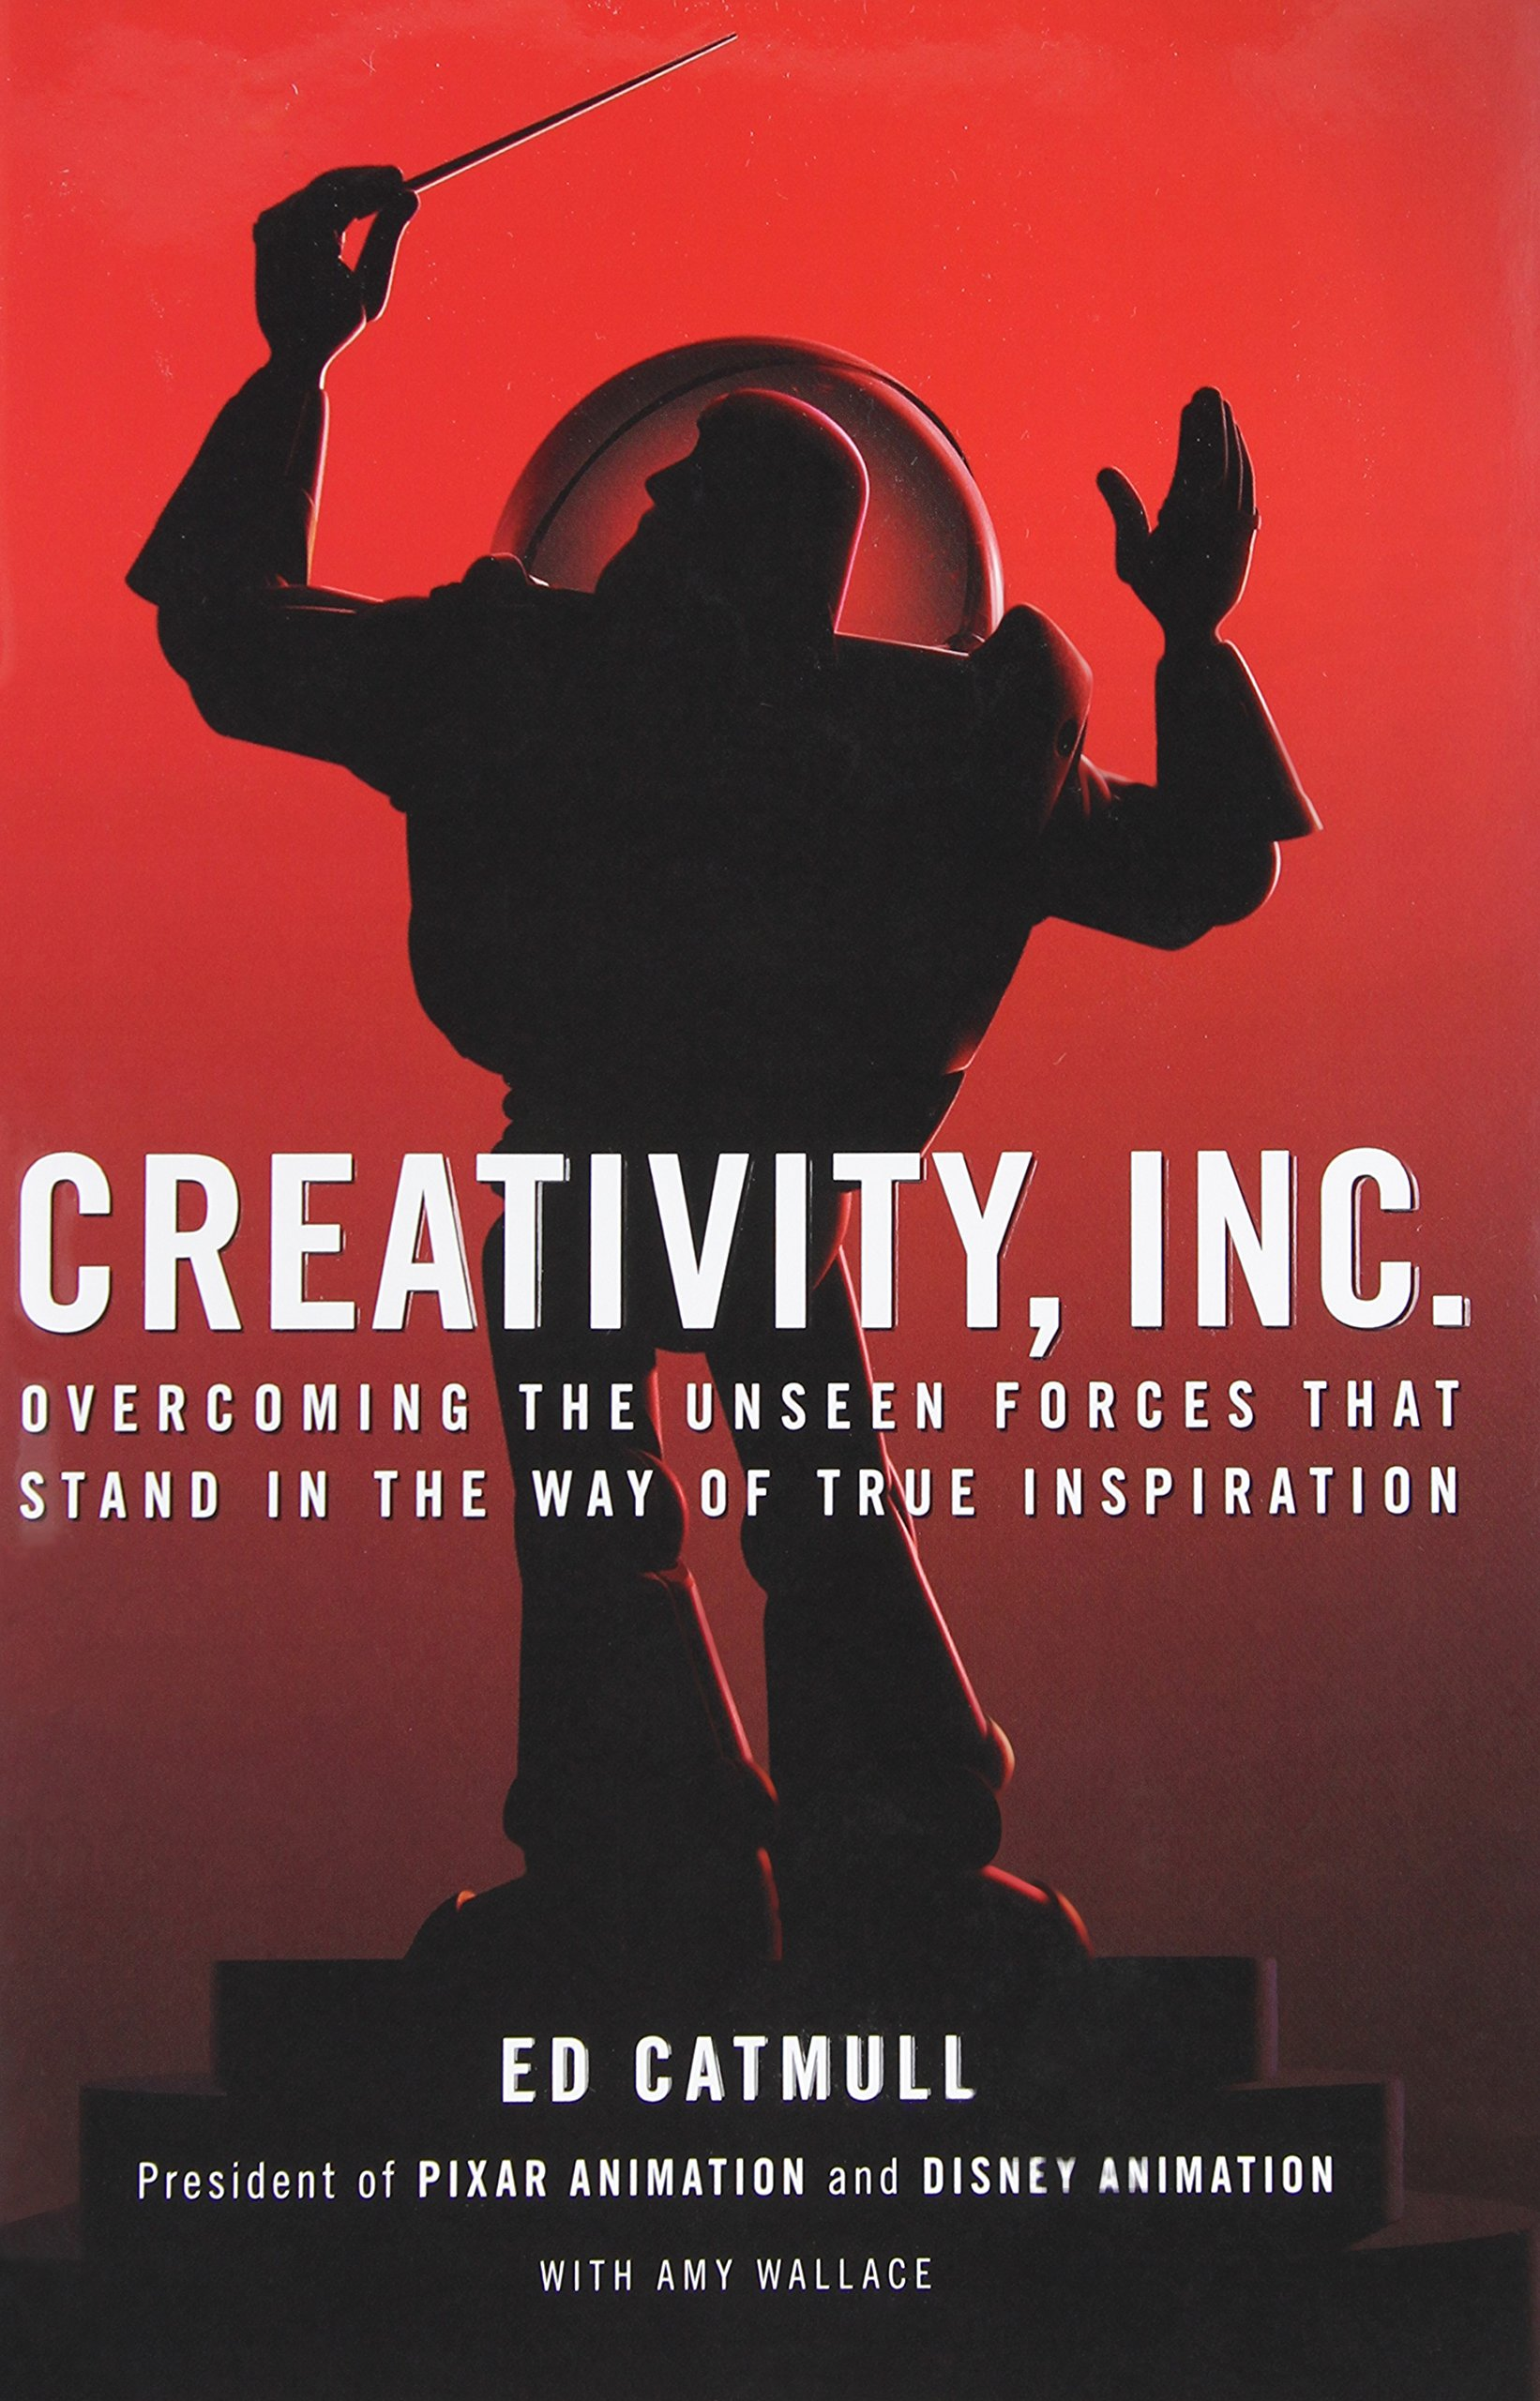 Read Online Creativity, Inc.: Overcoming the Unseen Forces That Stand in the Way of True Inspiration pdf epub